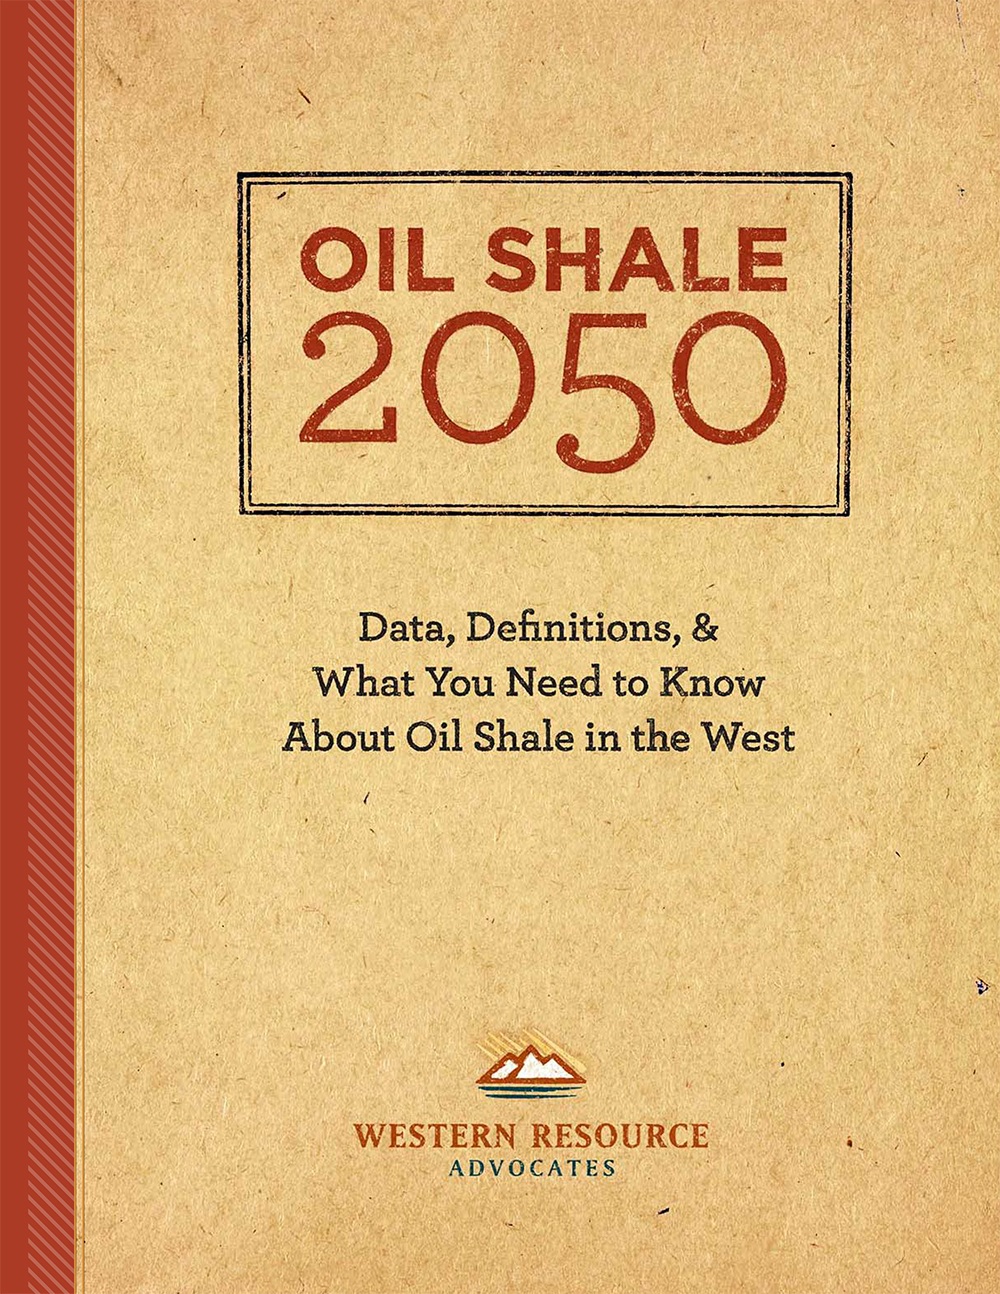 Oil Shale 2050 Report